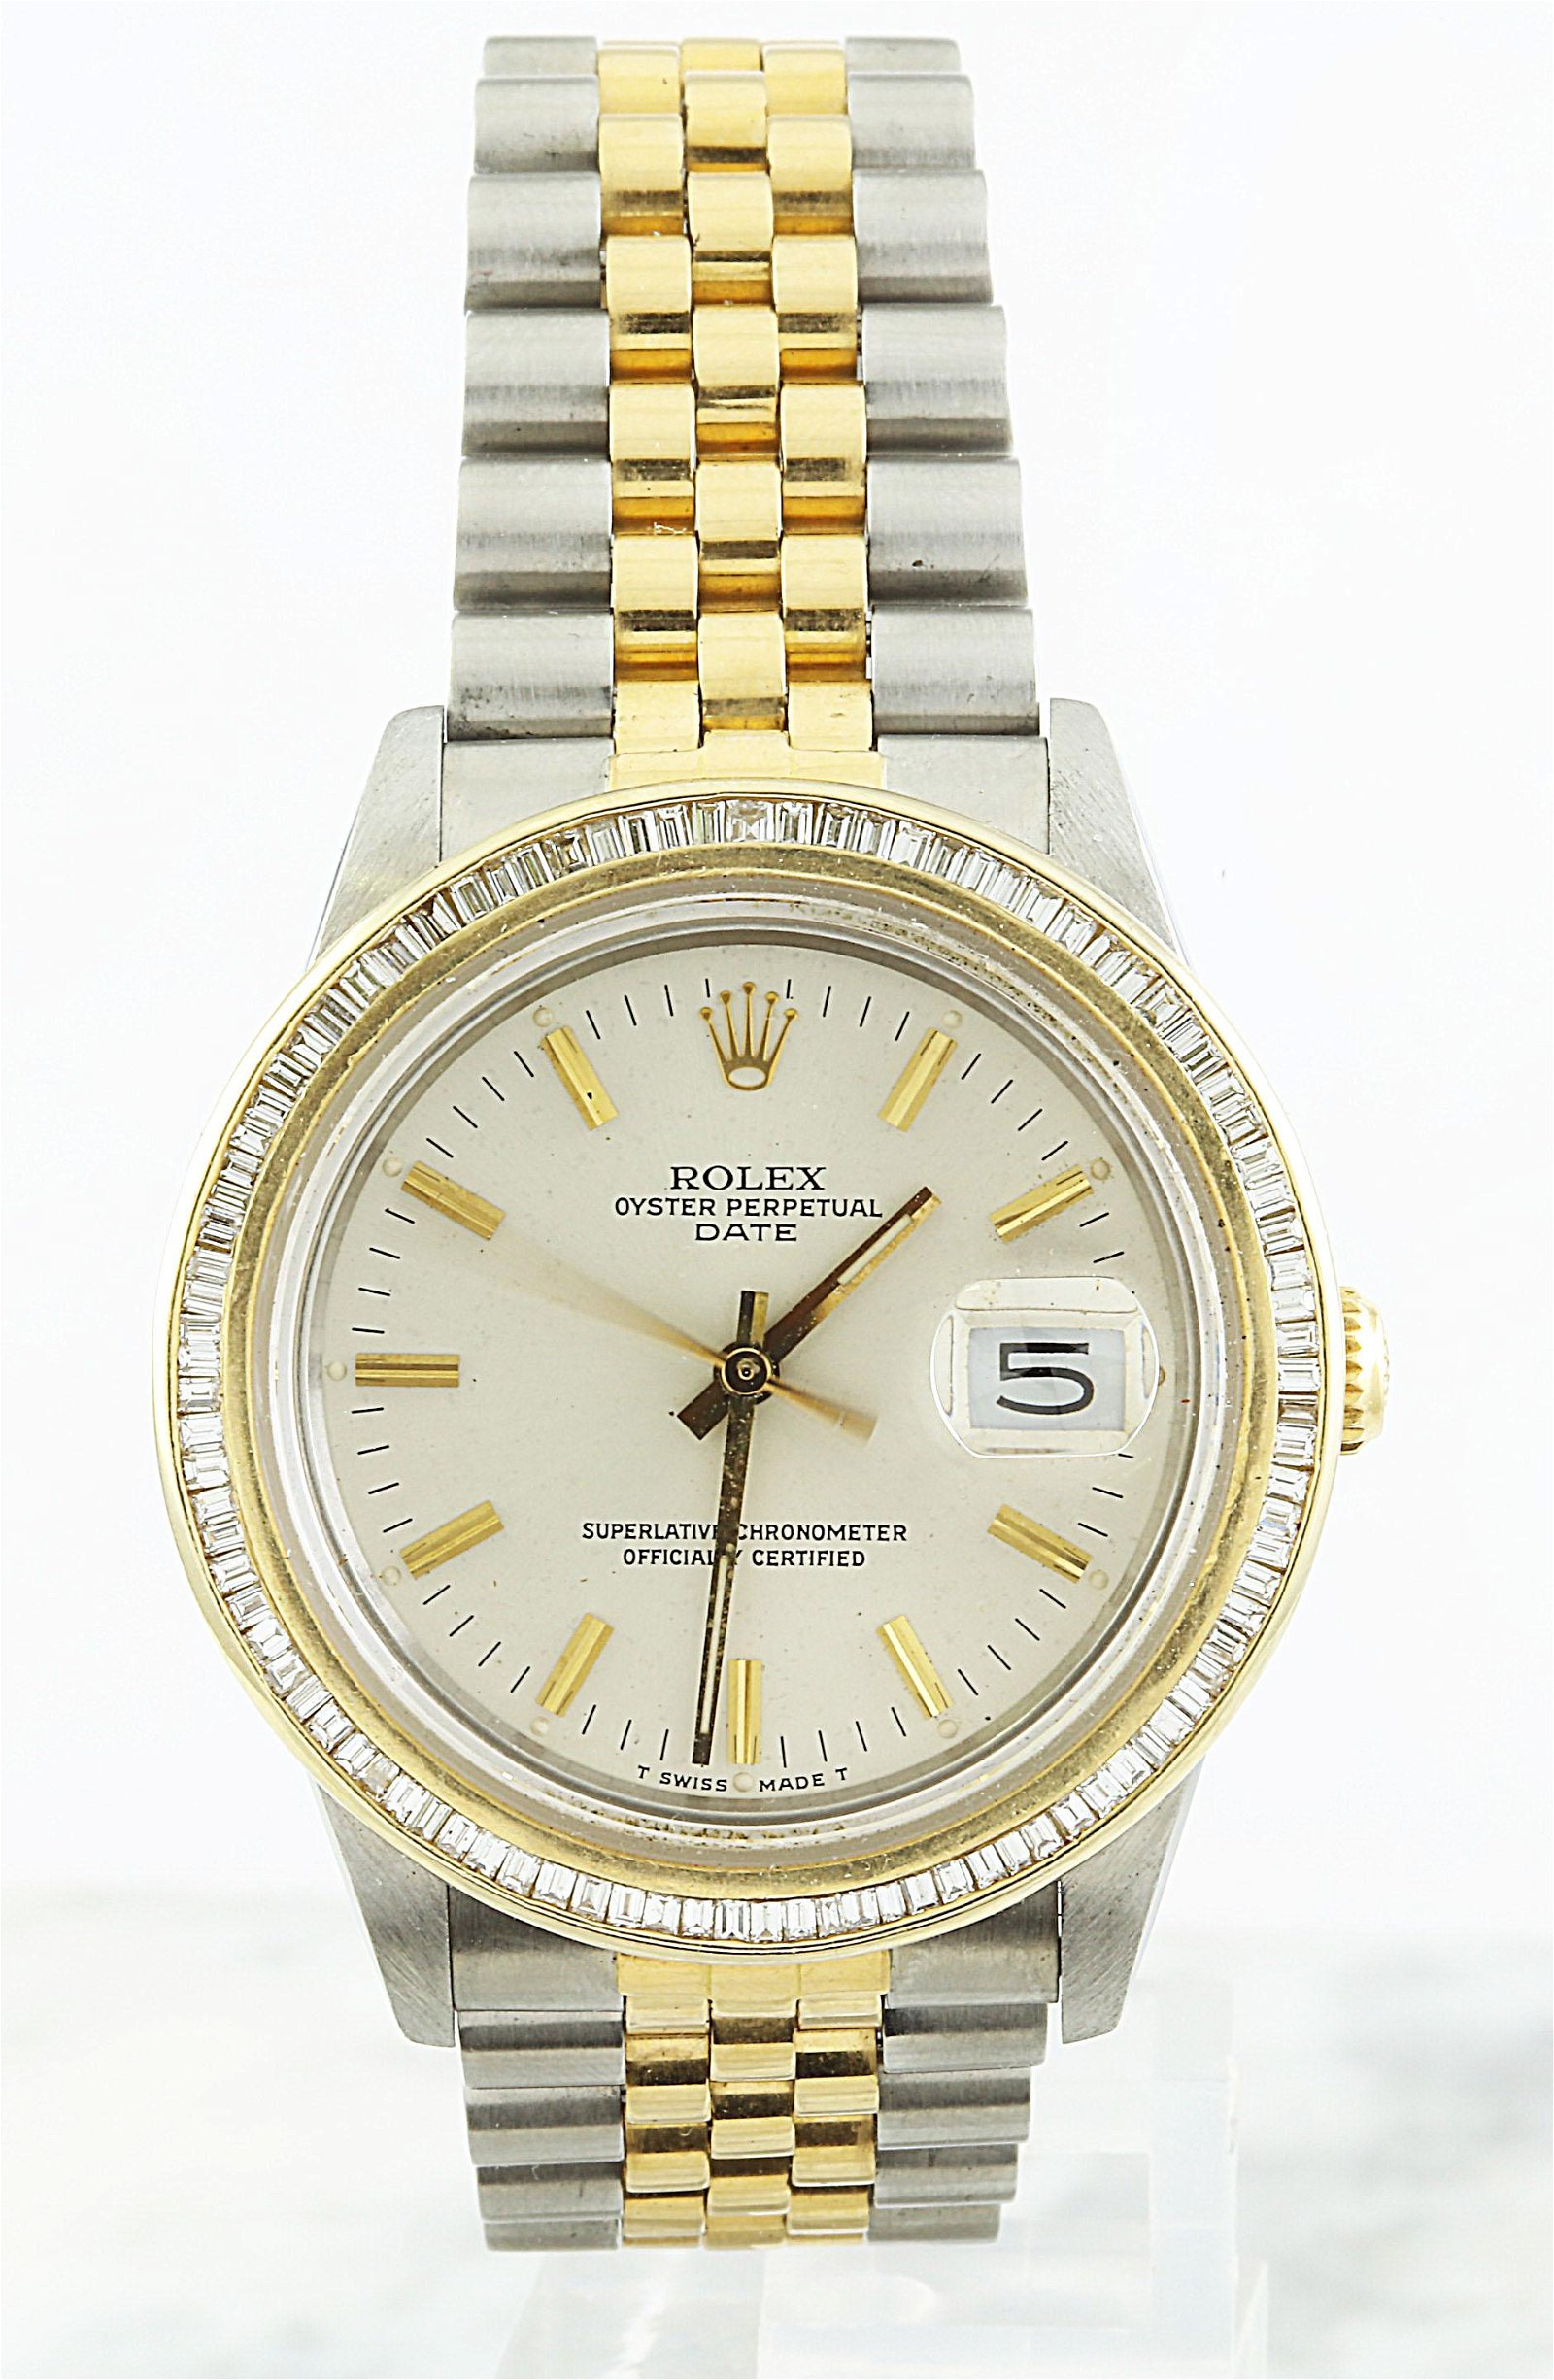 Authentic Rolex Oyster Perpetual Date Diamond Watch